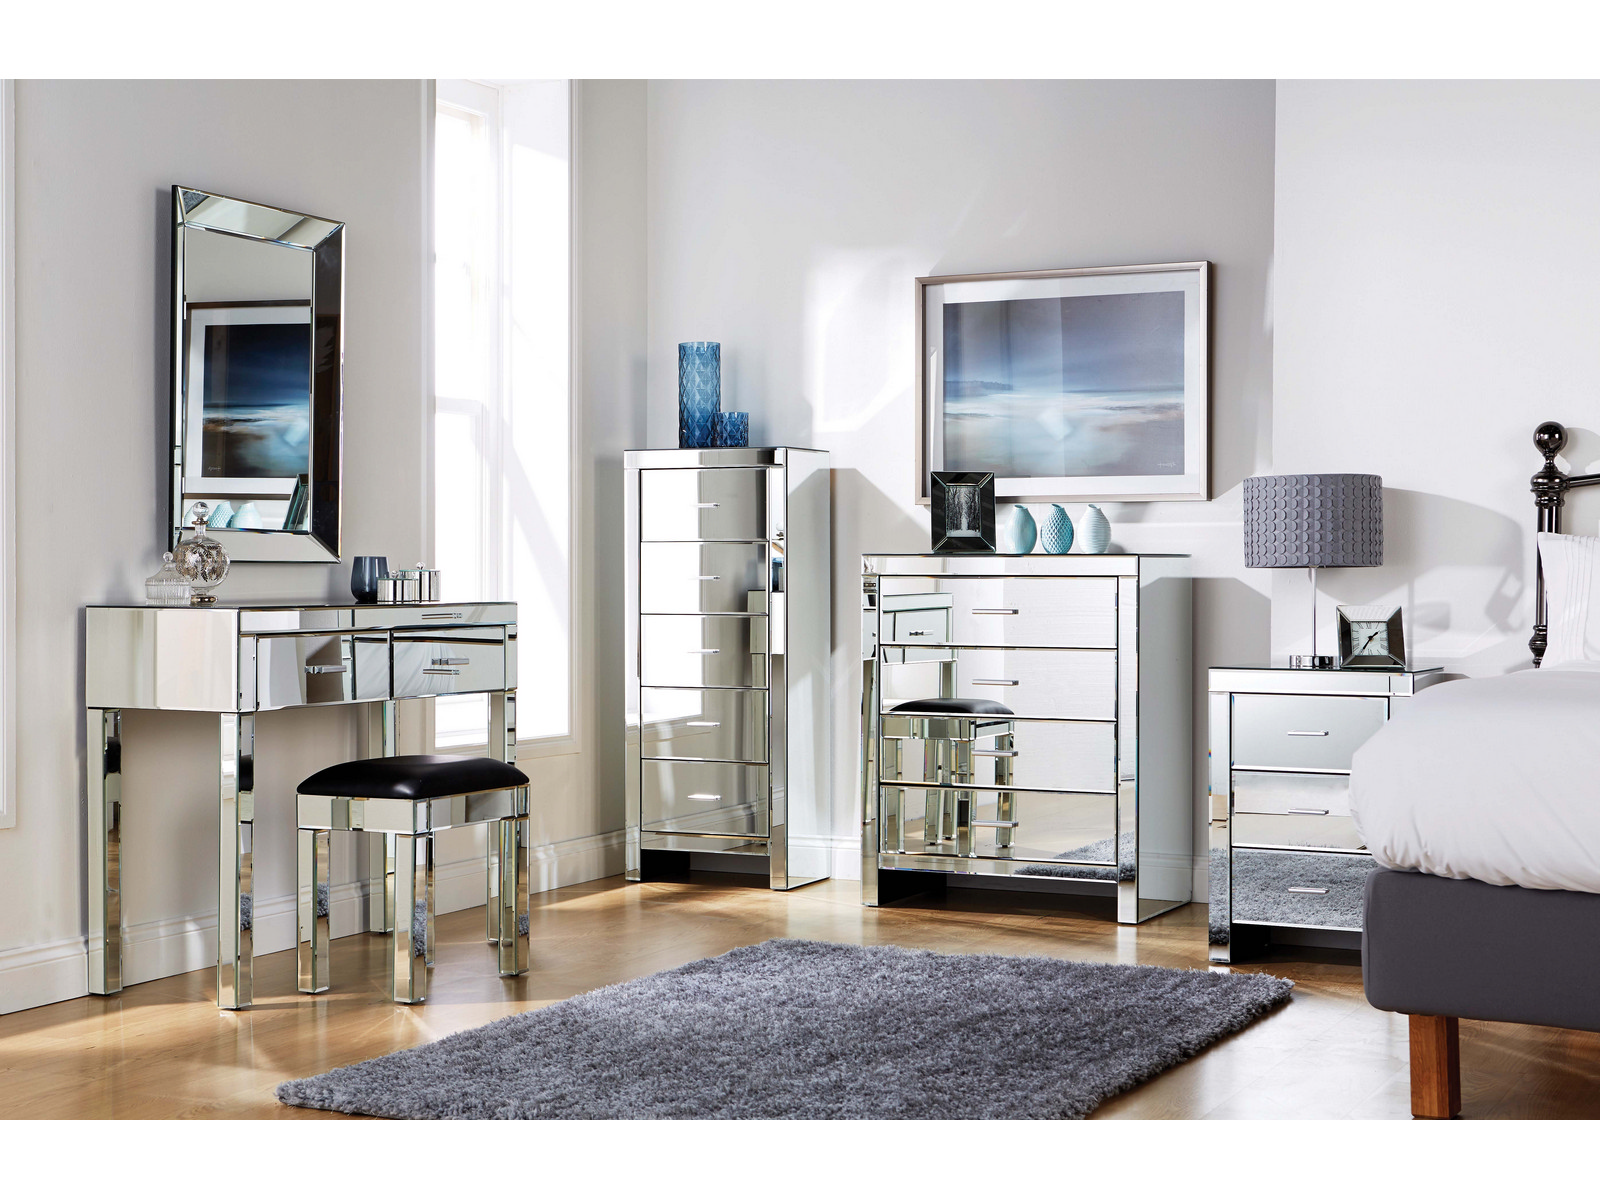 mirrored furniture bedroom collection glass chest drawers dressing table range ebay. Black Bedroom Furniture Sets. Home Design Ideas